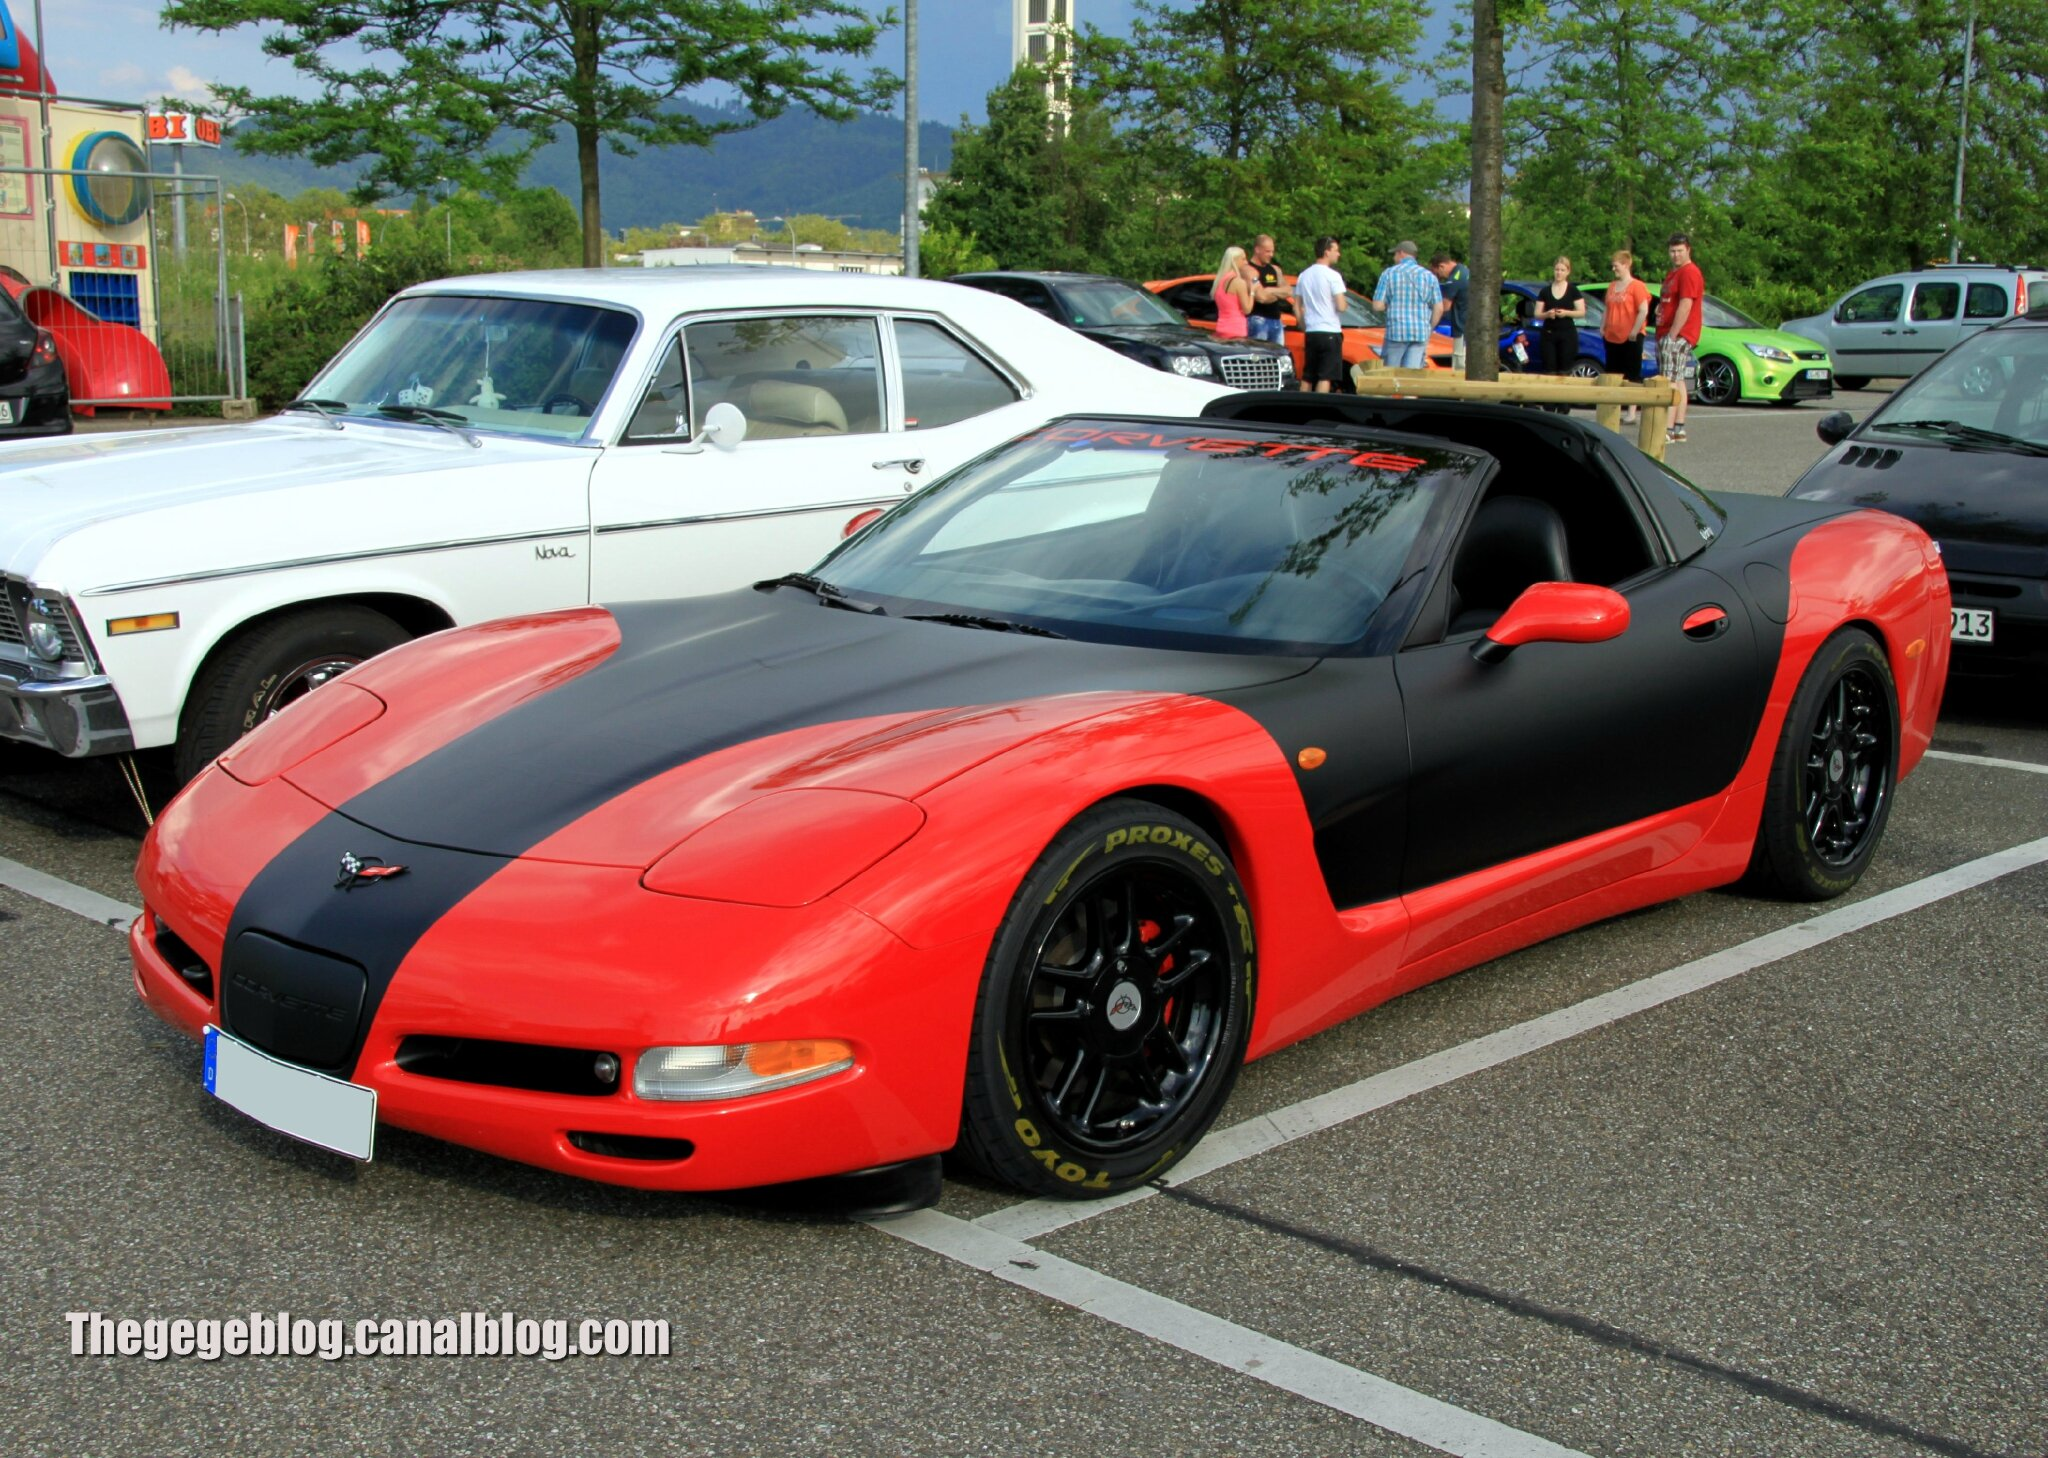 Chevrolet corvette C5 (Rencard Burger King juin 2013) 01